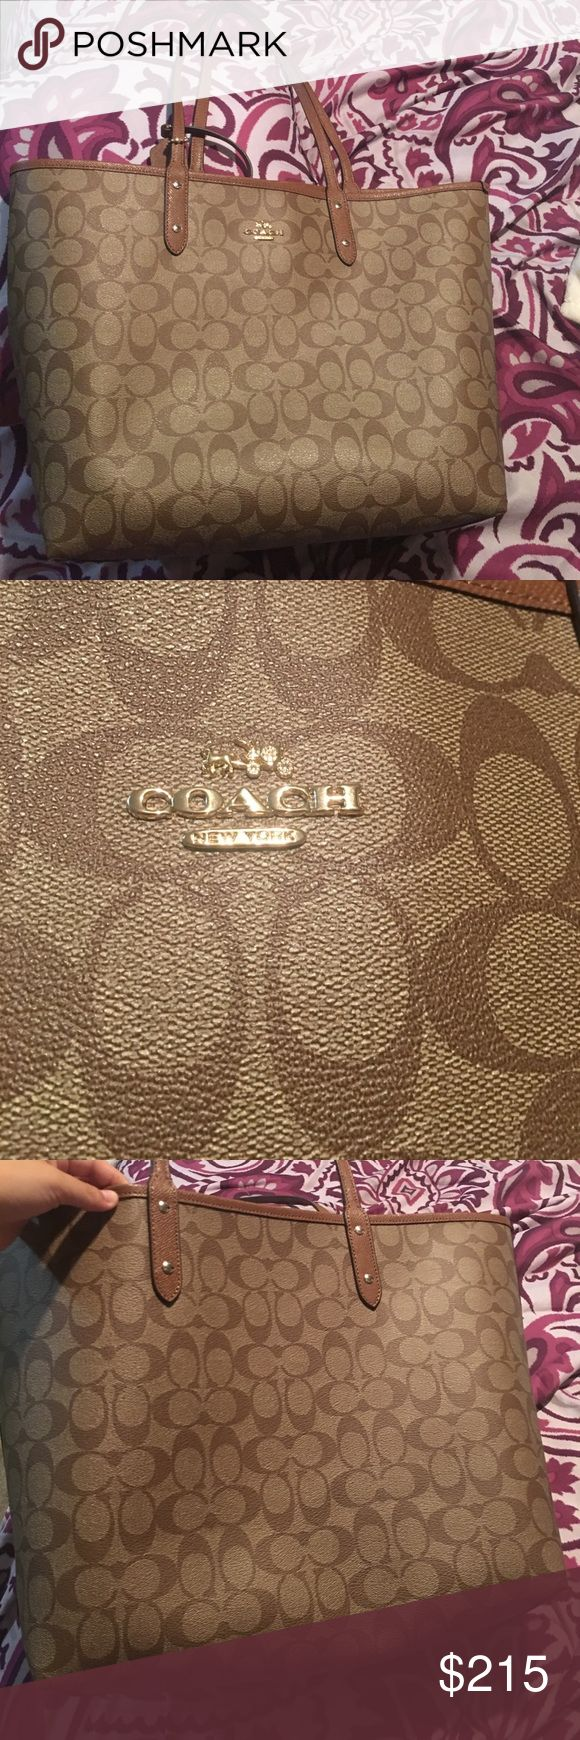 Coach tote bag Never used and comes with a coach Wallet Coach Bags Totes